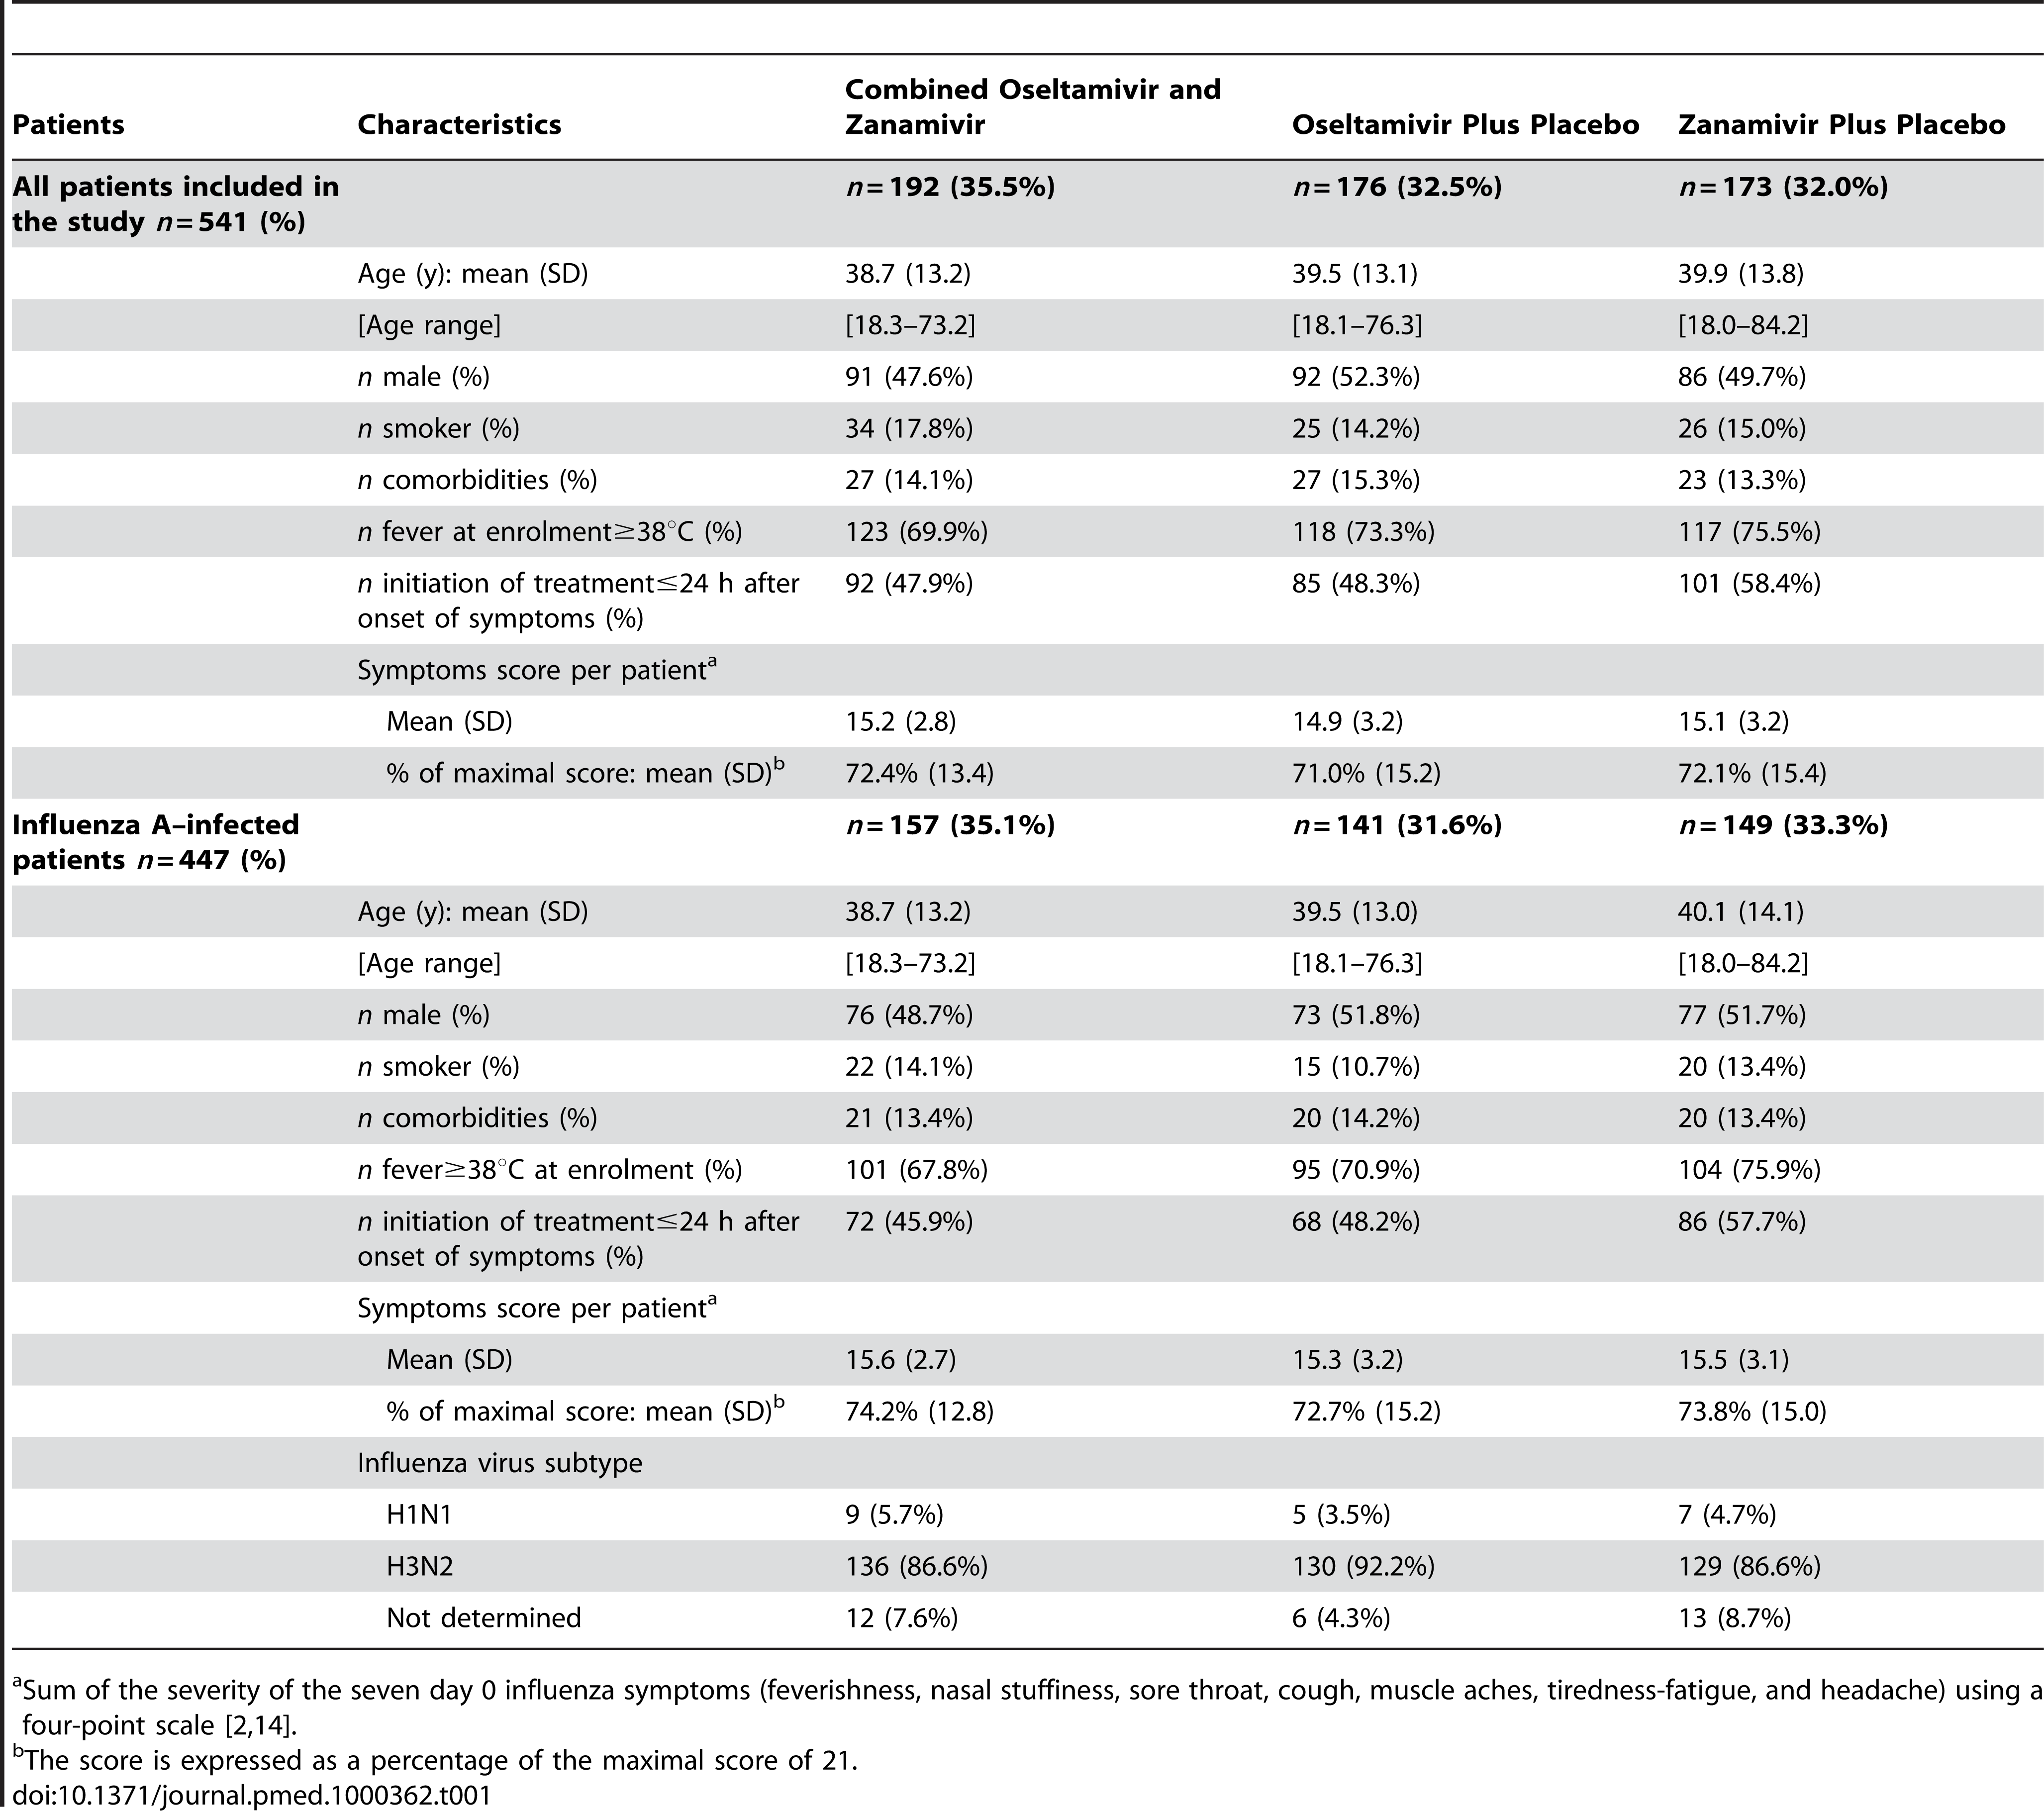 Characteristics of the 541 patients enrolled in the study and of the 447 influenza A-infected patients according to treatment arms.